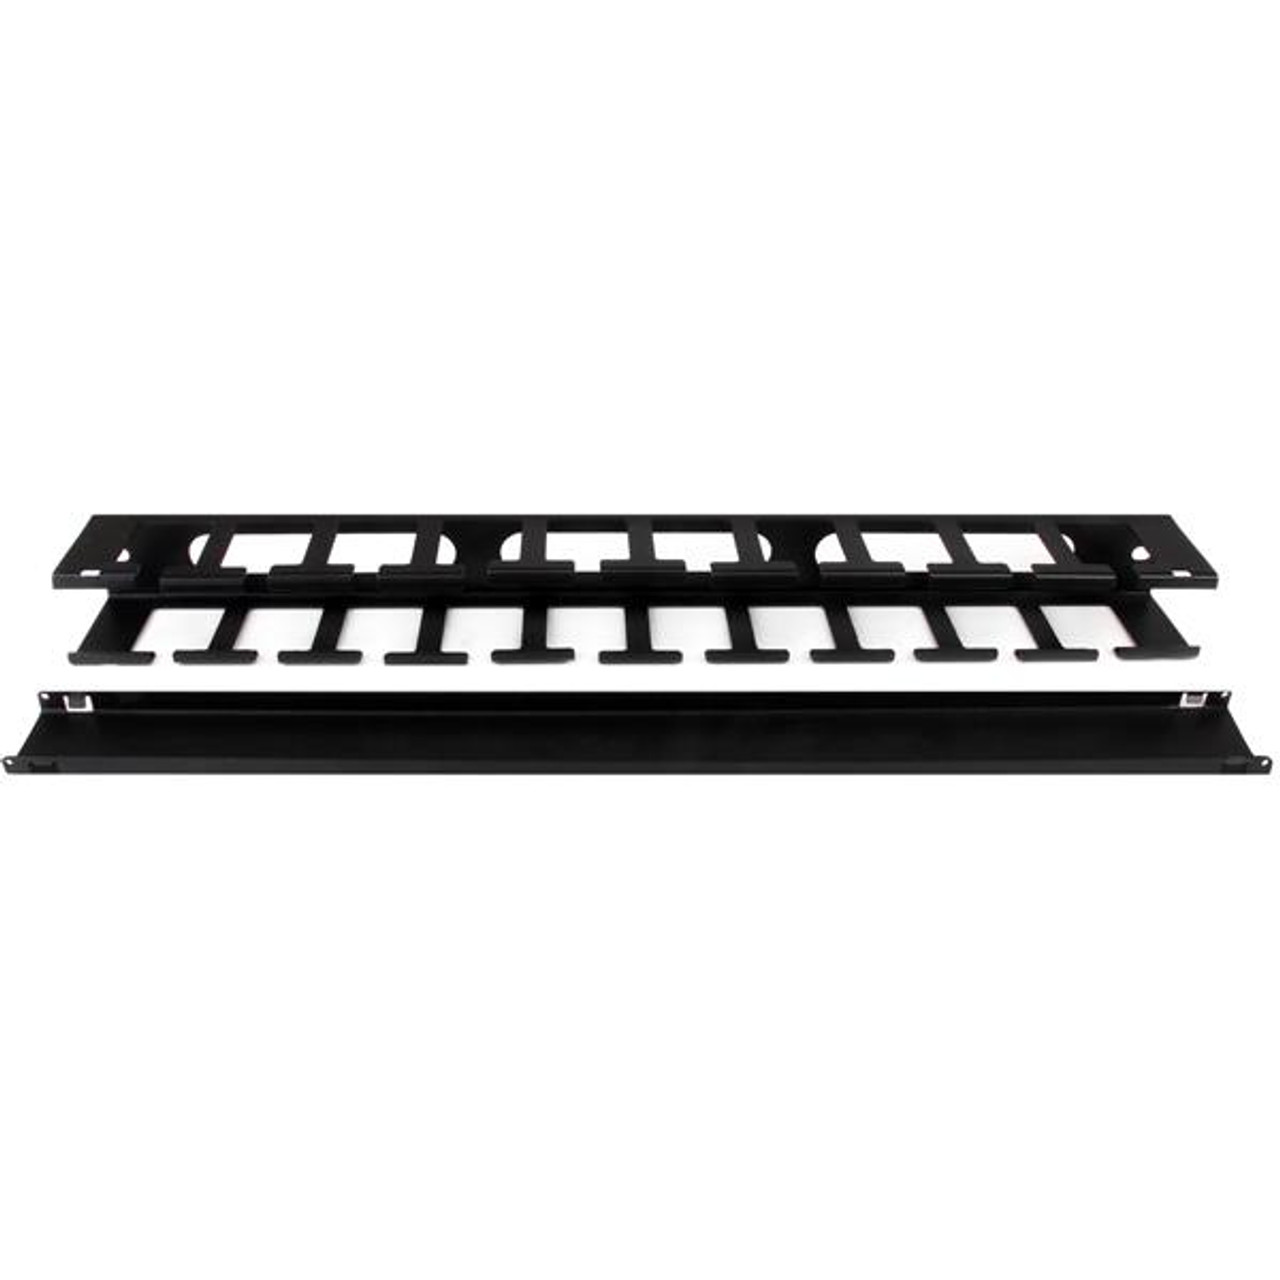 Image for StarTech 1U Covered Cable Duct - Horizontal Cable Organizer CX Computer Superstore